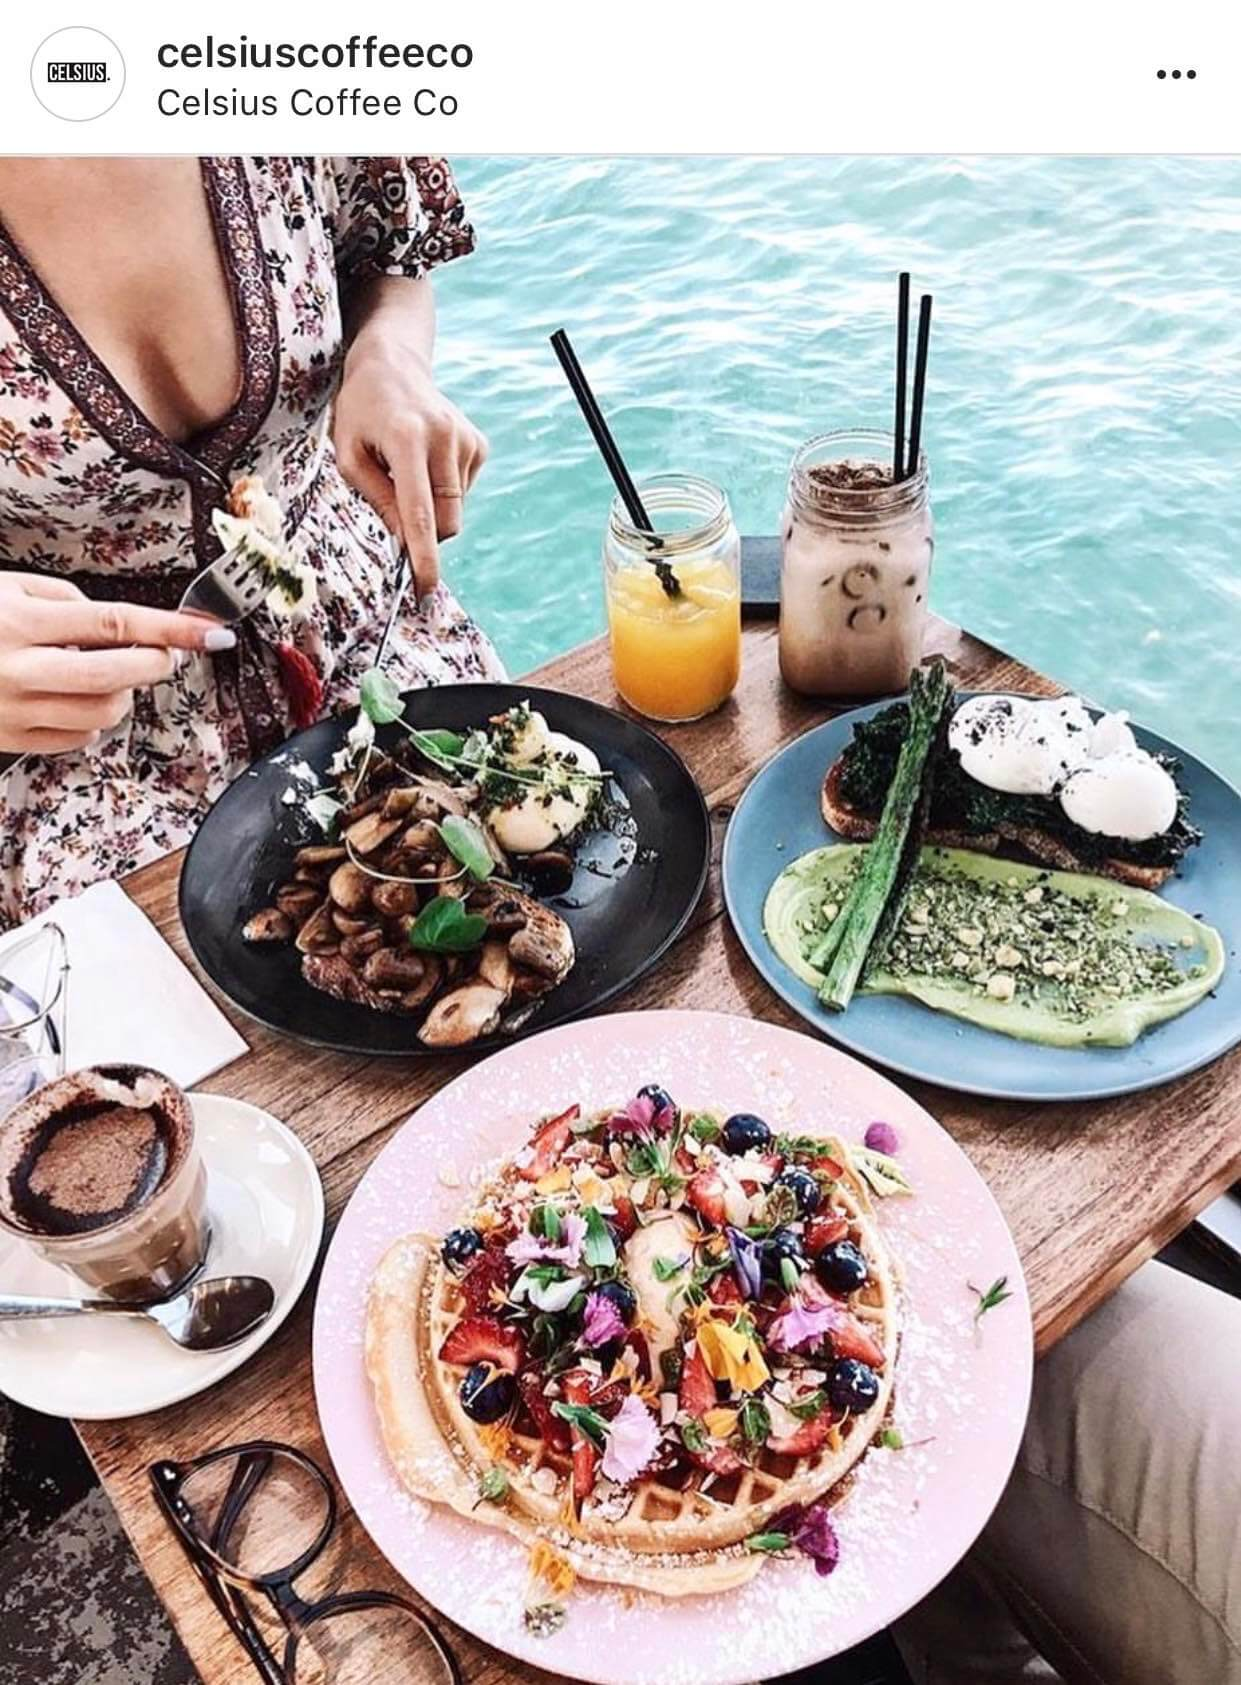 Most Instagrammable Cafes in Sydney, Celsius Coffee Co